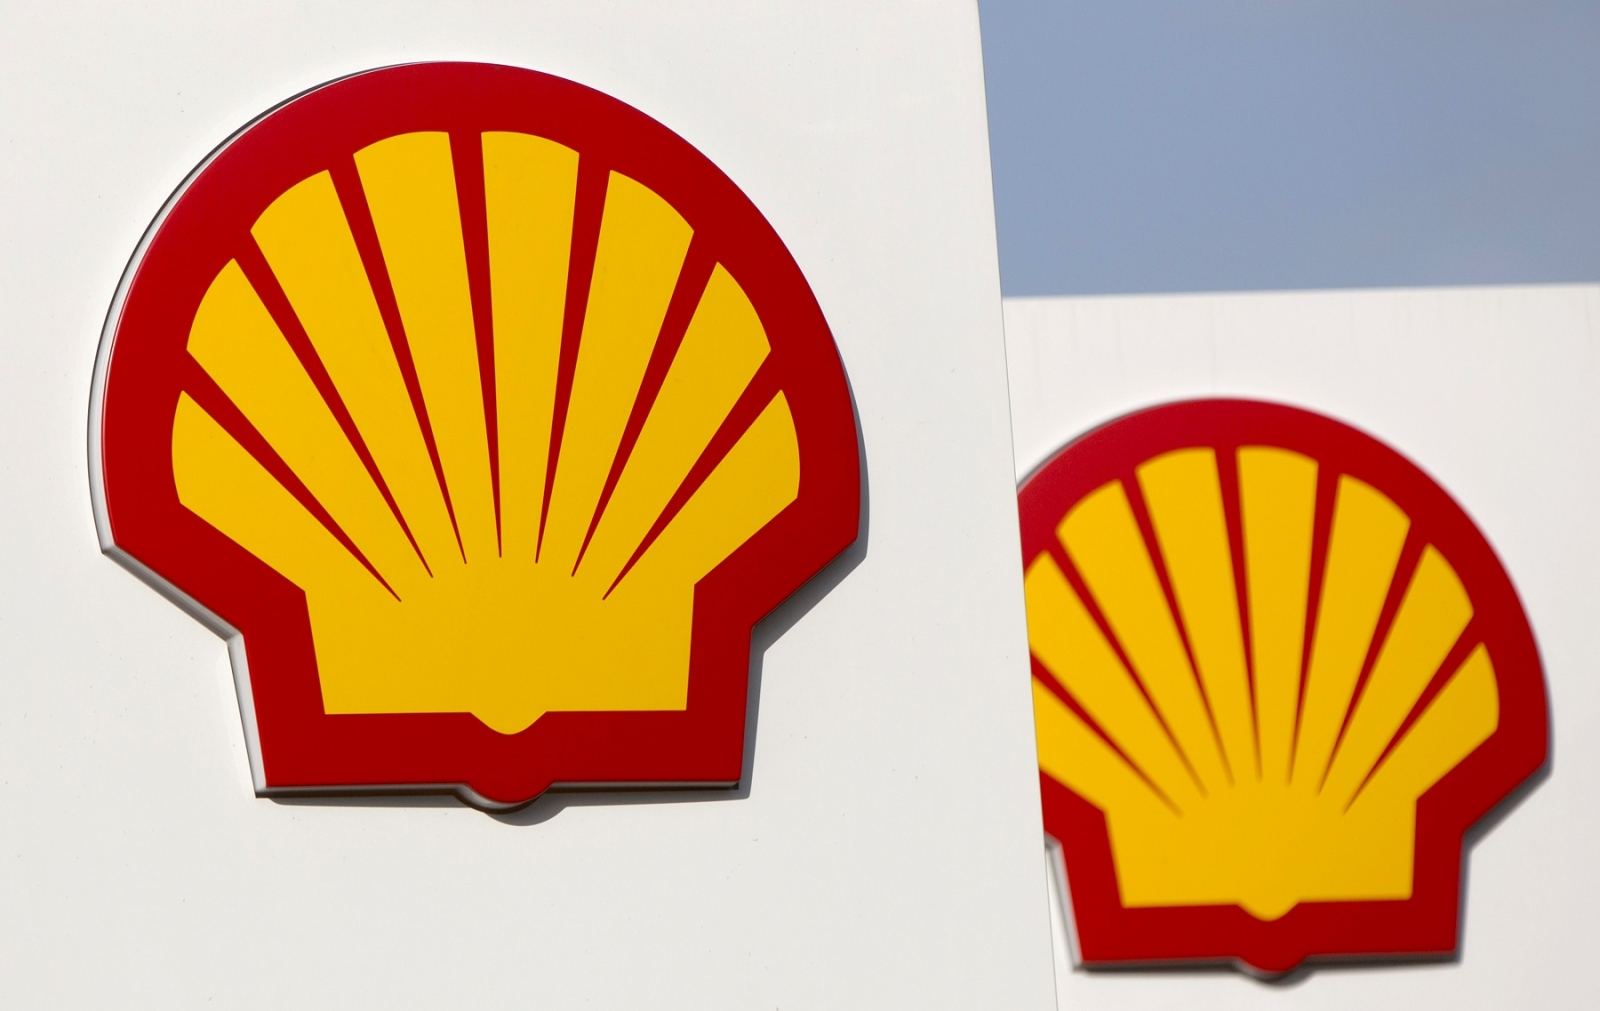 royal dutch and shell case In january 2004, royal dutch/shell (shell), the third largest oil exploration and production company in the world, announced that its financial statements had shown inflated oil reserves in the.